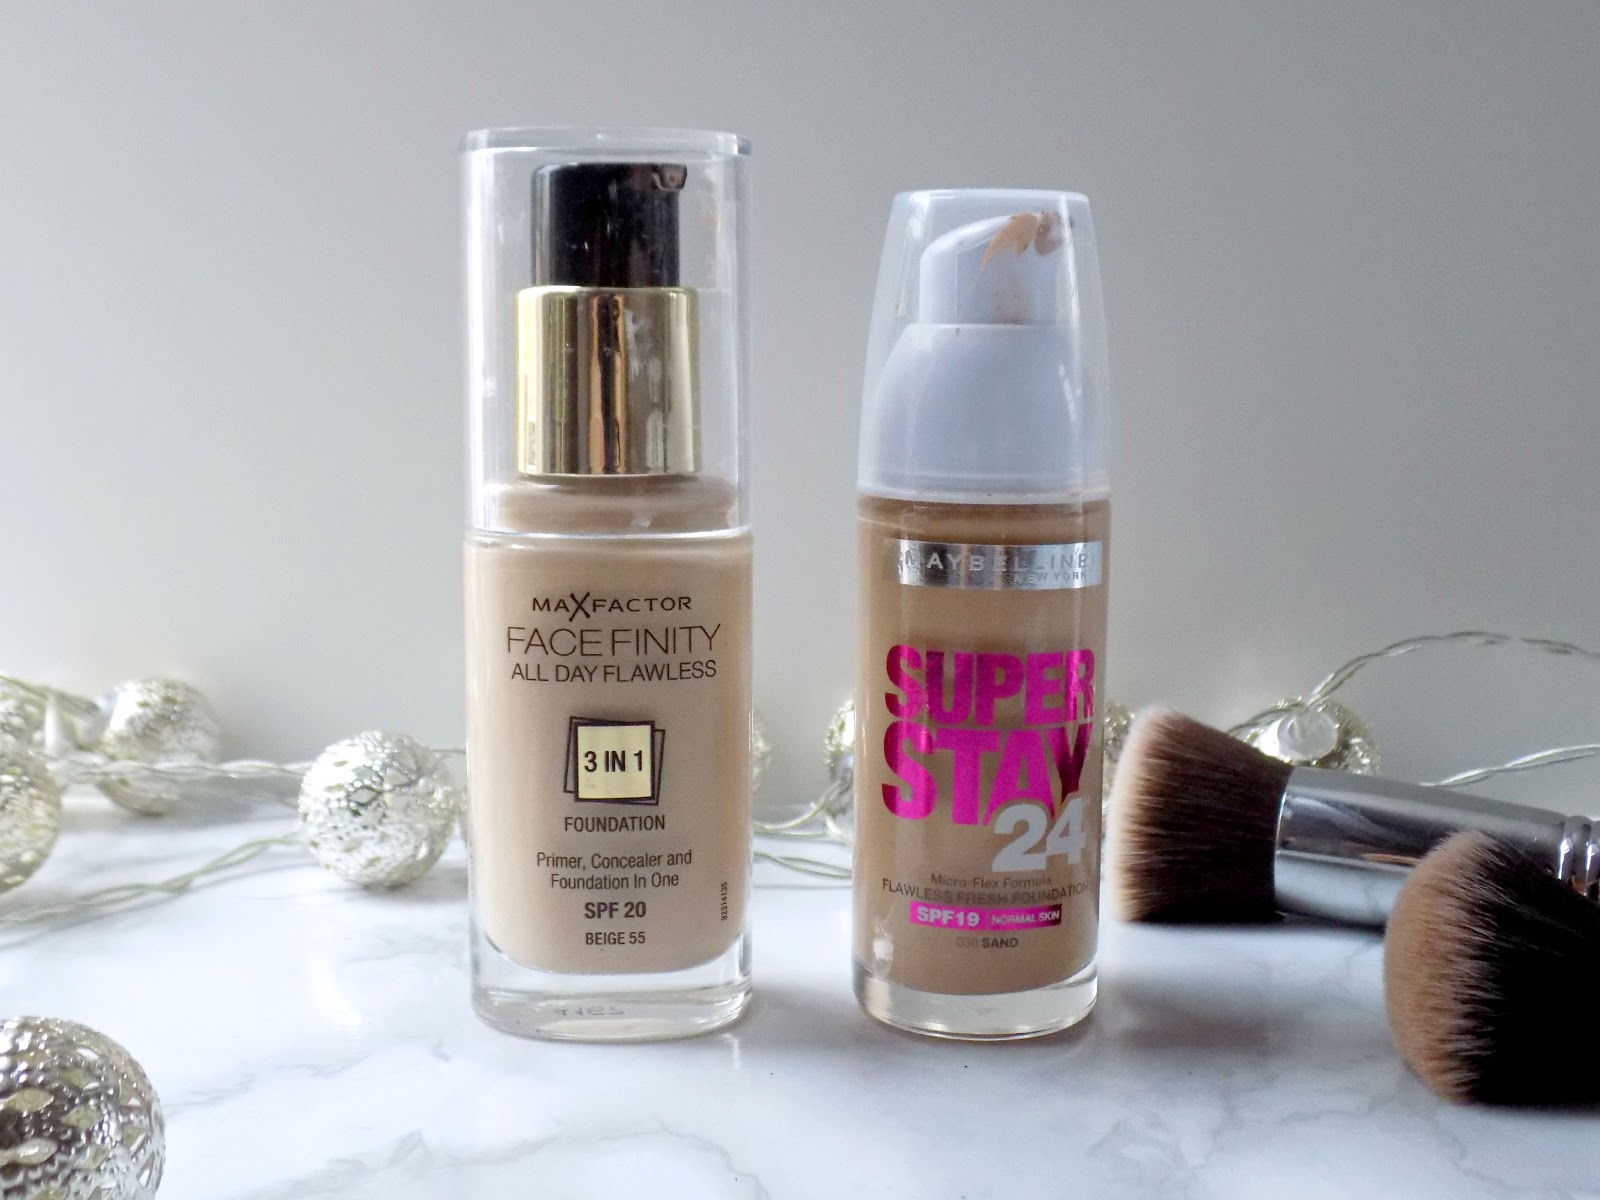 Max Factor Face Finity All Day Flawless foundation